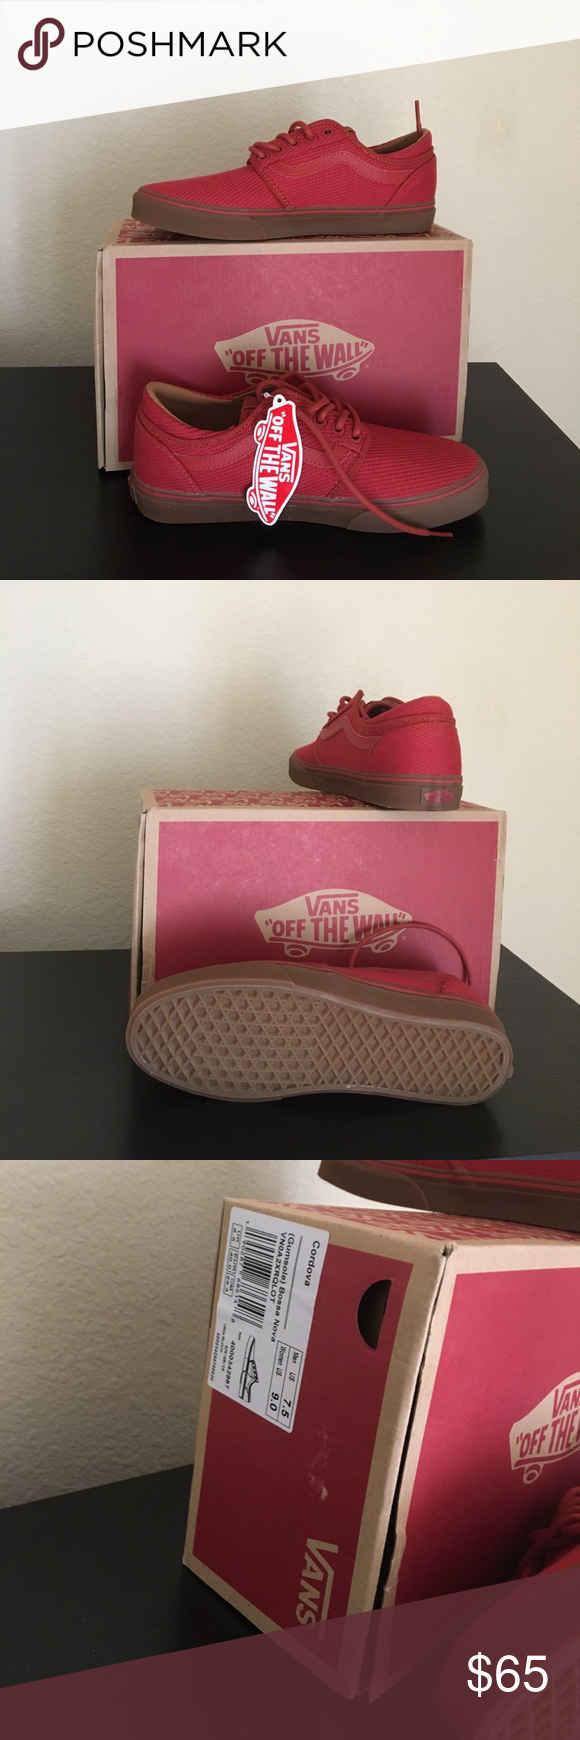 46f0555efc Vans Men s Gumsole Bossa Nova Red Shoes 7.5 New with box men s size 7.5 Vans  Shoes Athletic Shoes